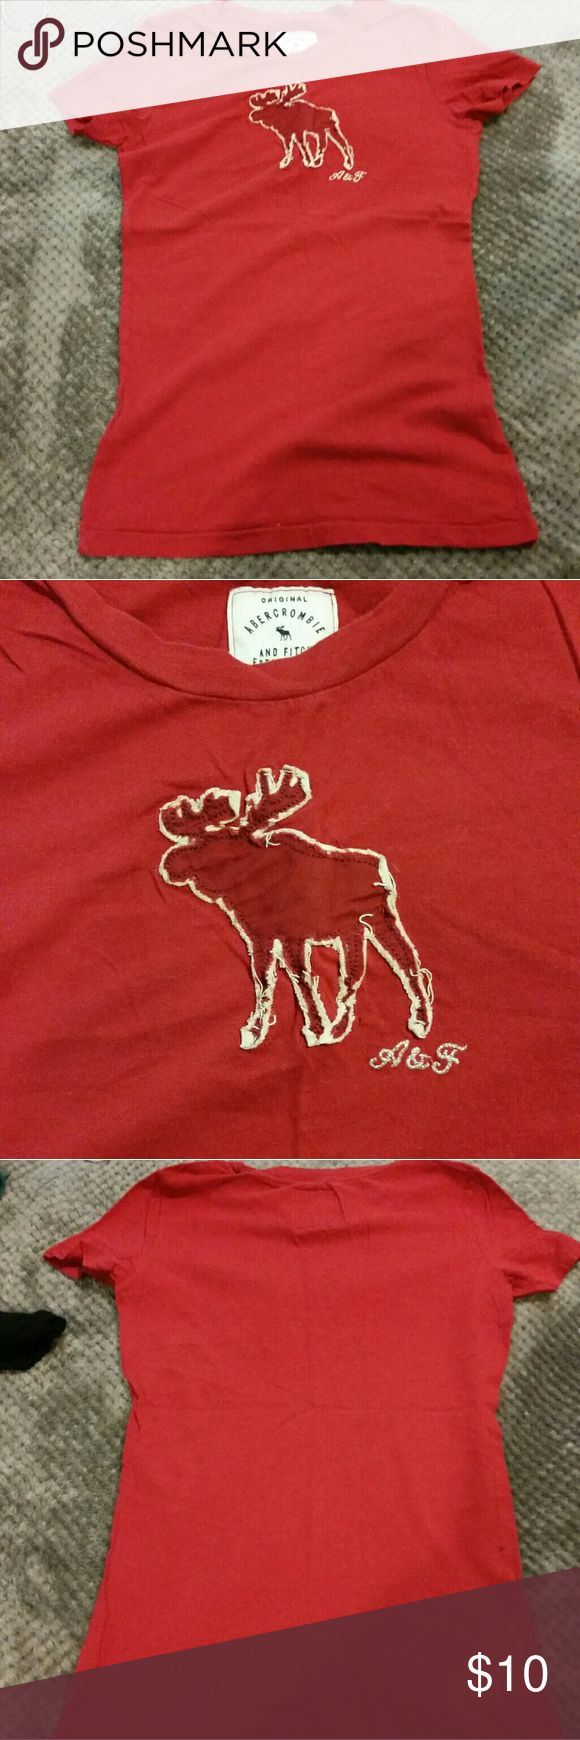 Abercrombie and Fitch Red Tshirt Too small for me. Fits like a kids size. Abercrombie & Fitch Tops Tees - Long Sleeve